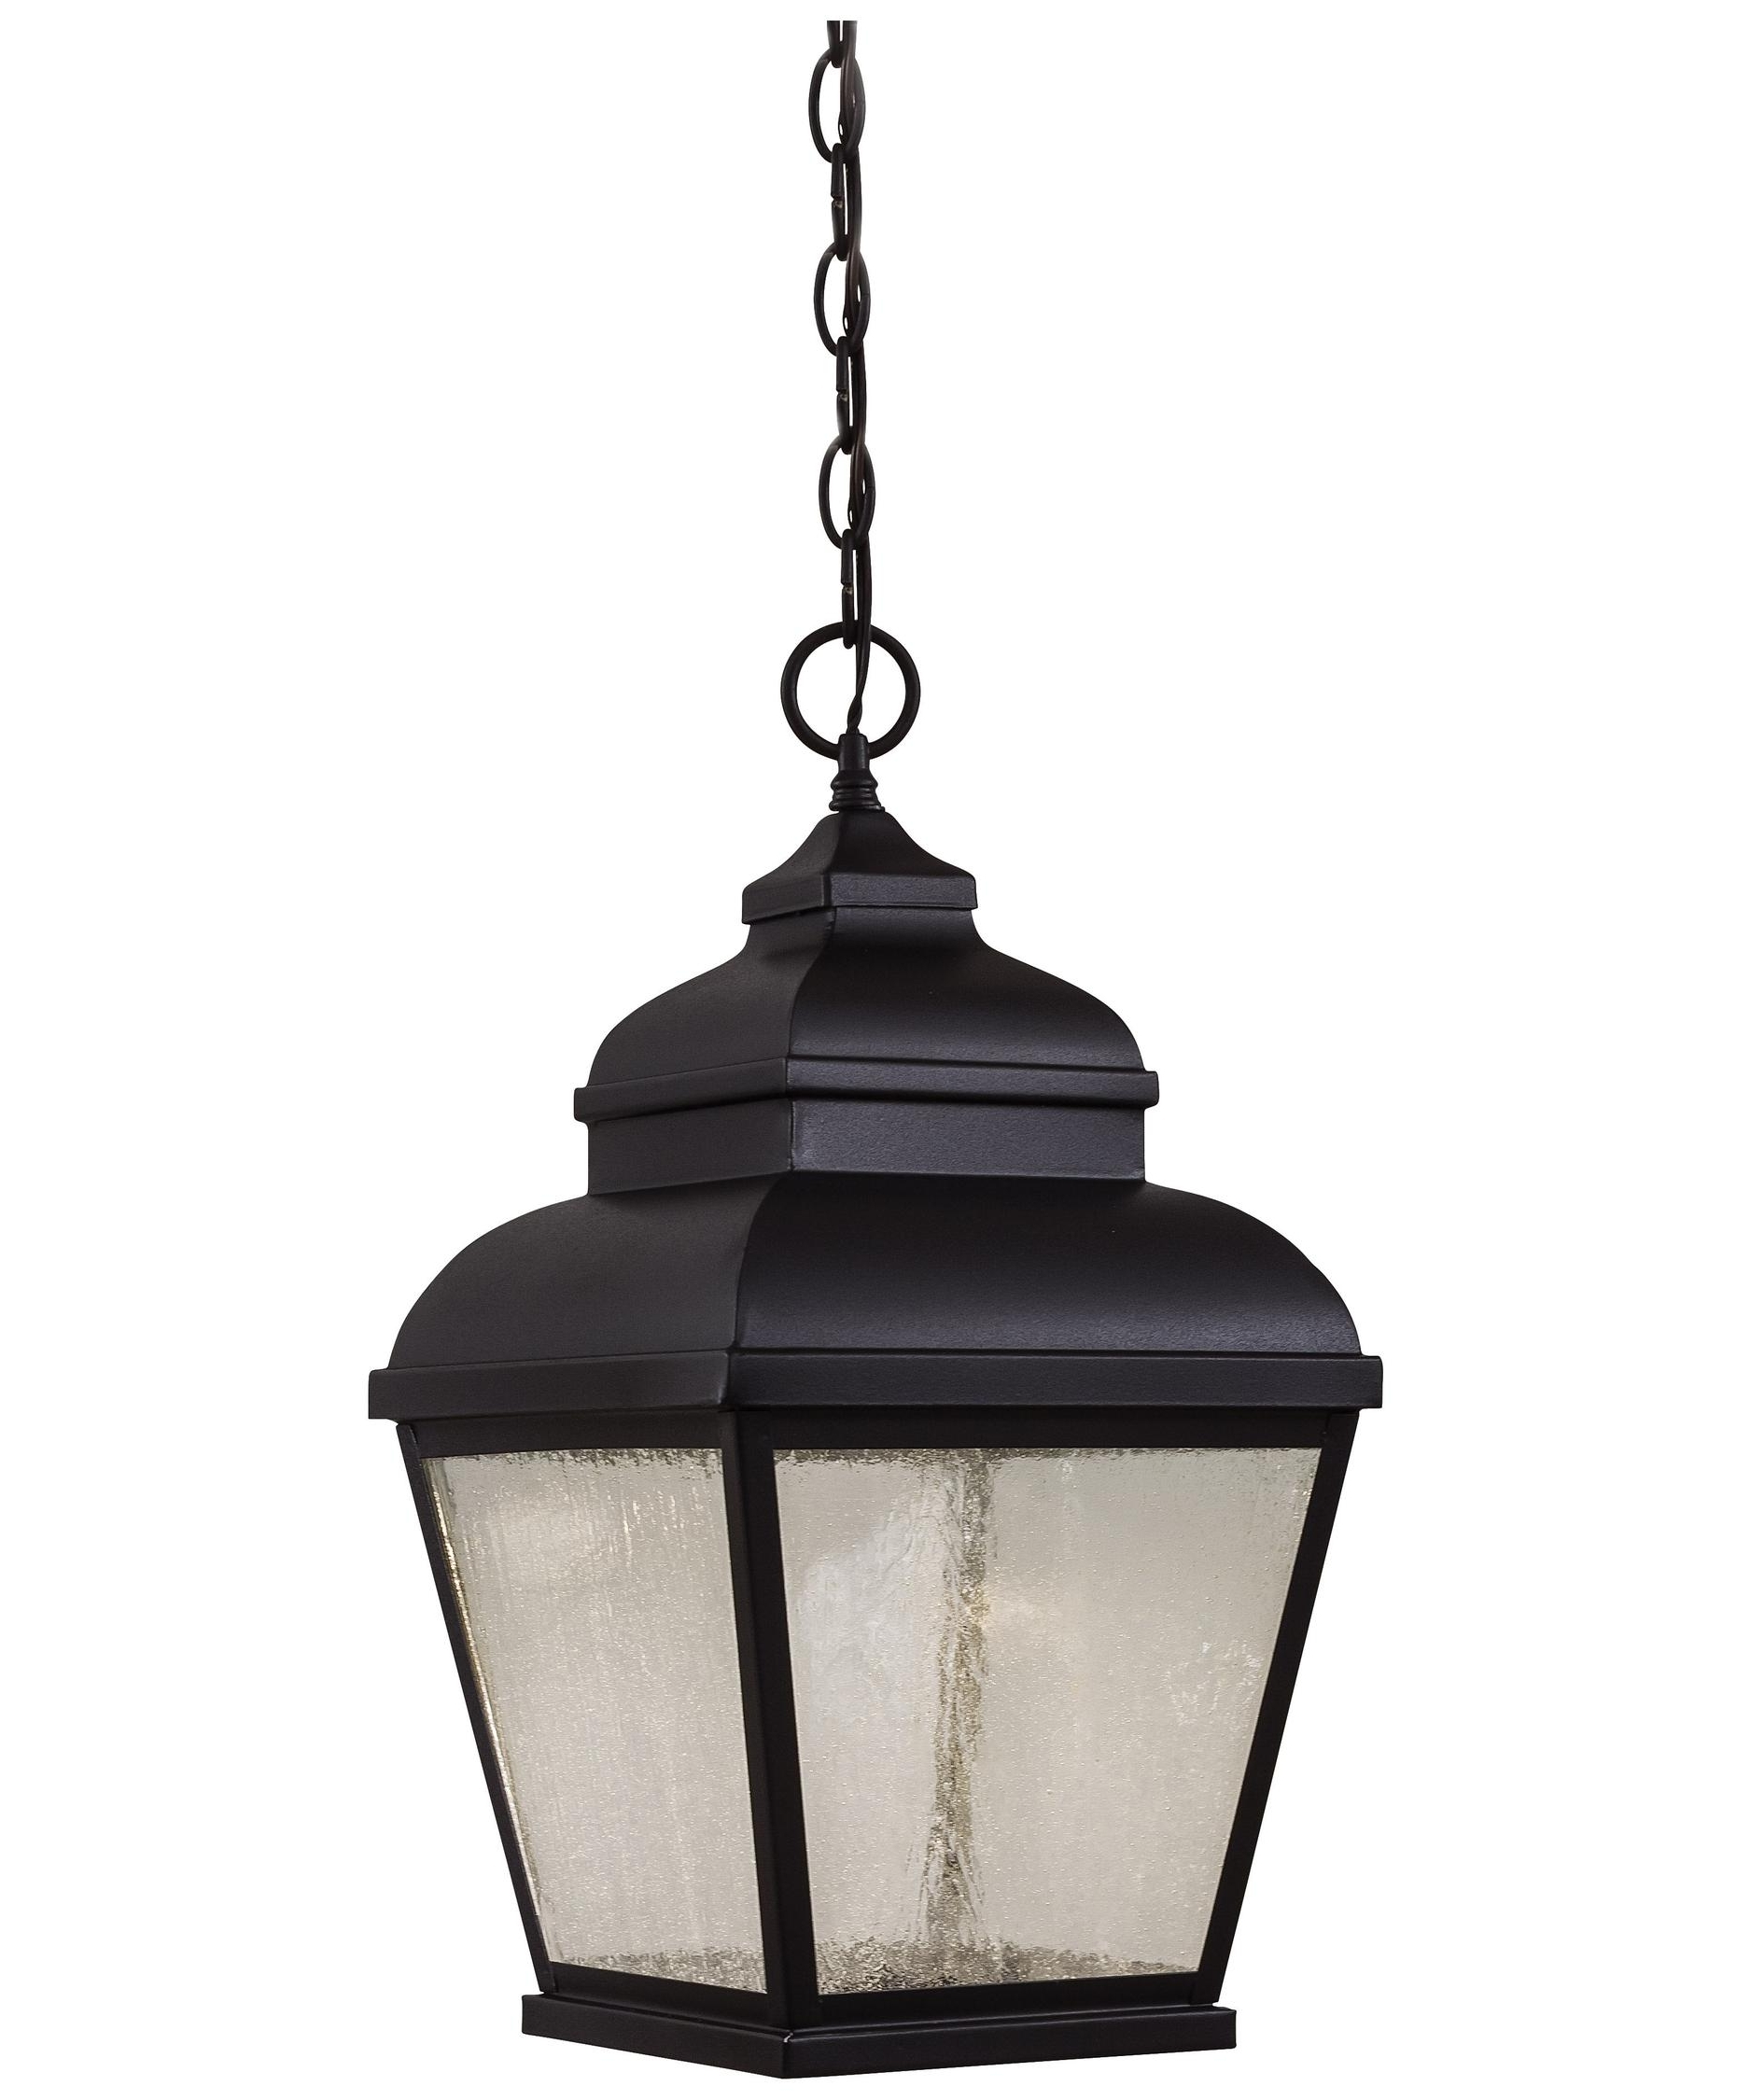 Favorite Large Outdoor Hanging Lights Intended For Minka Lavery 8264 Mossoro 10 Inch Wide 3 Light Outdoor Hanging (View 3 of 20)